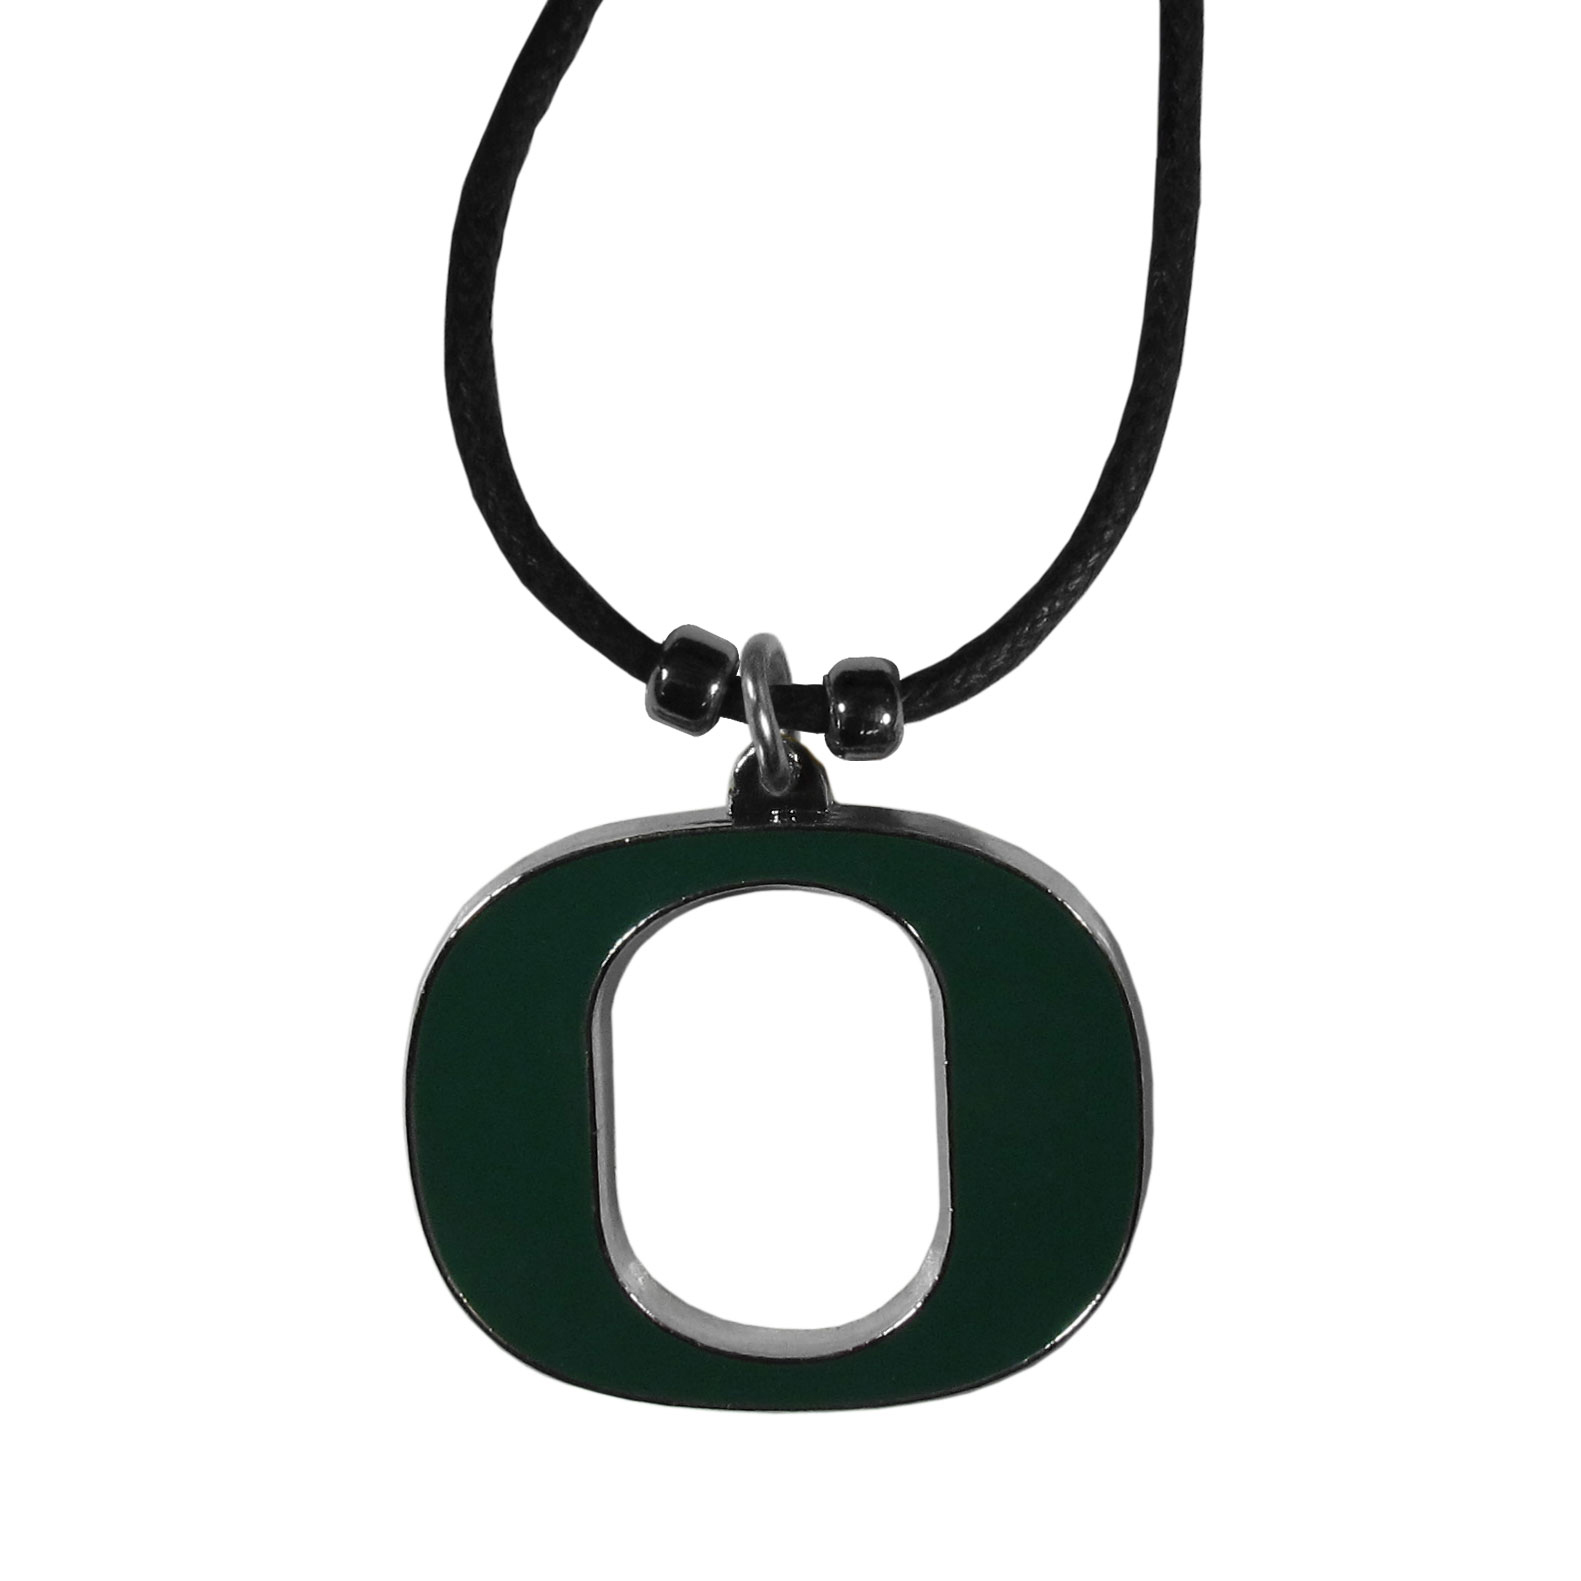 Oregon Ducks Cord Necklace - This classic style cotton cord necklace features an extra large Oregon Ducks pendant on a 21 inch cord.